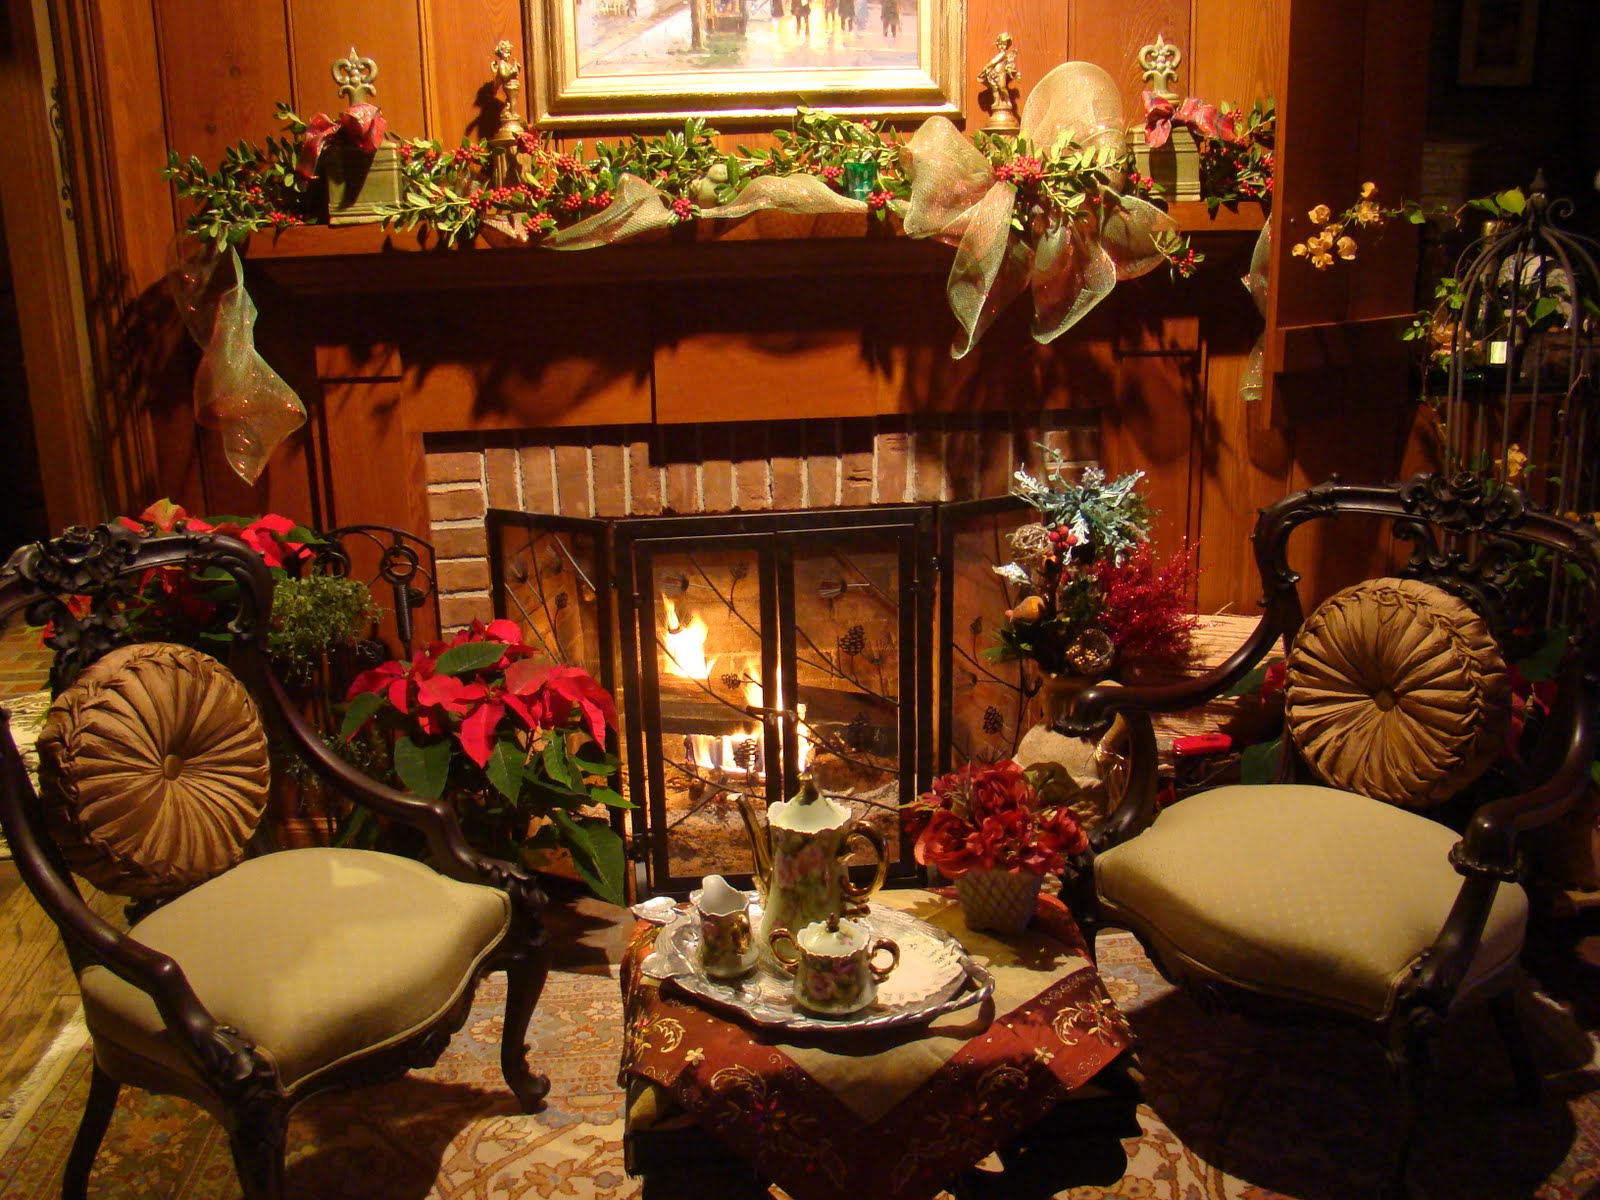 Christmas fireplace fire holiday festive decorations e - Decoracion de chimeneas rusticas ...